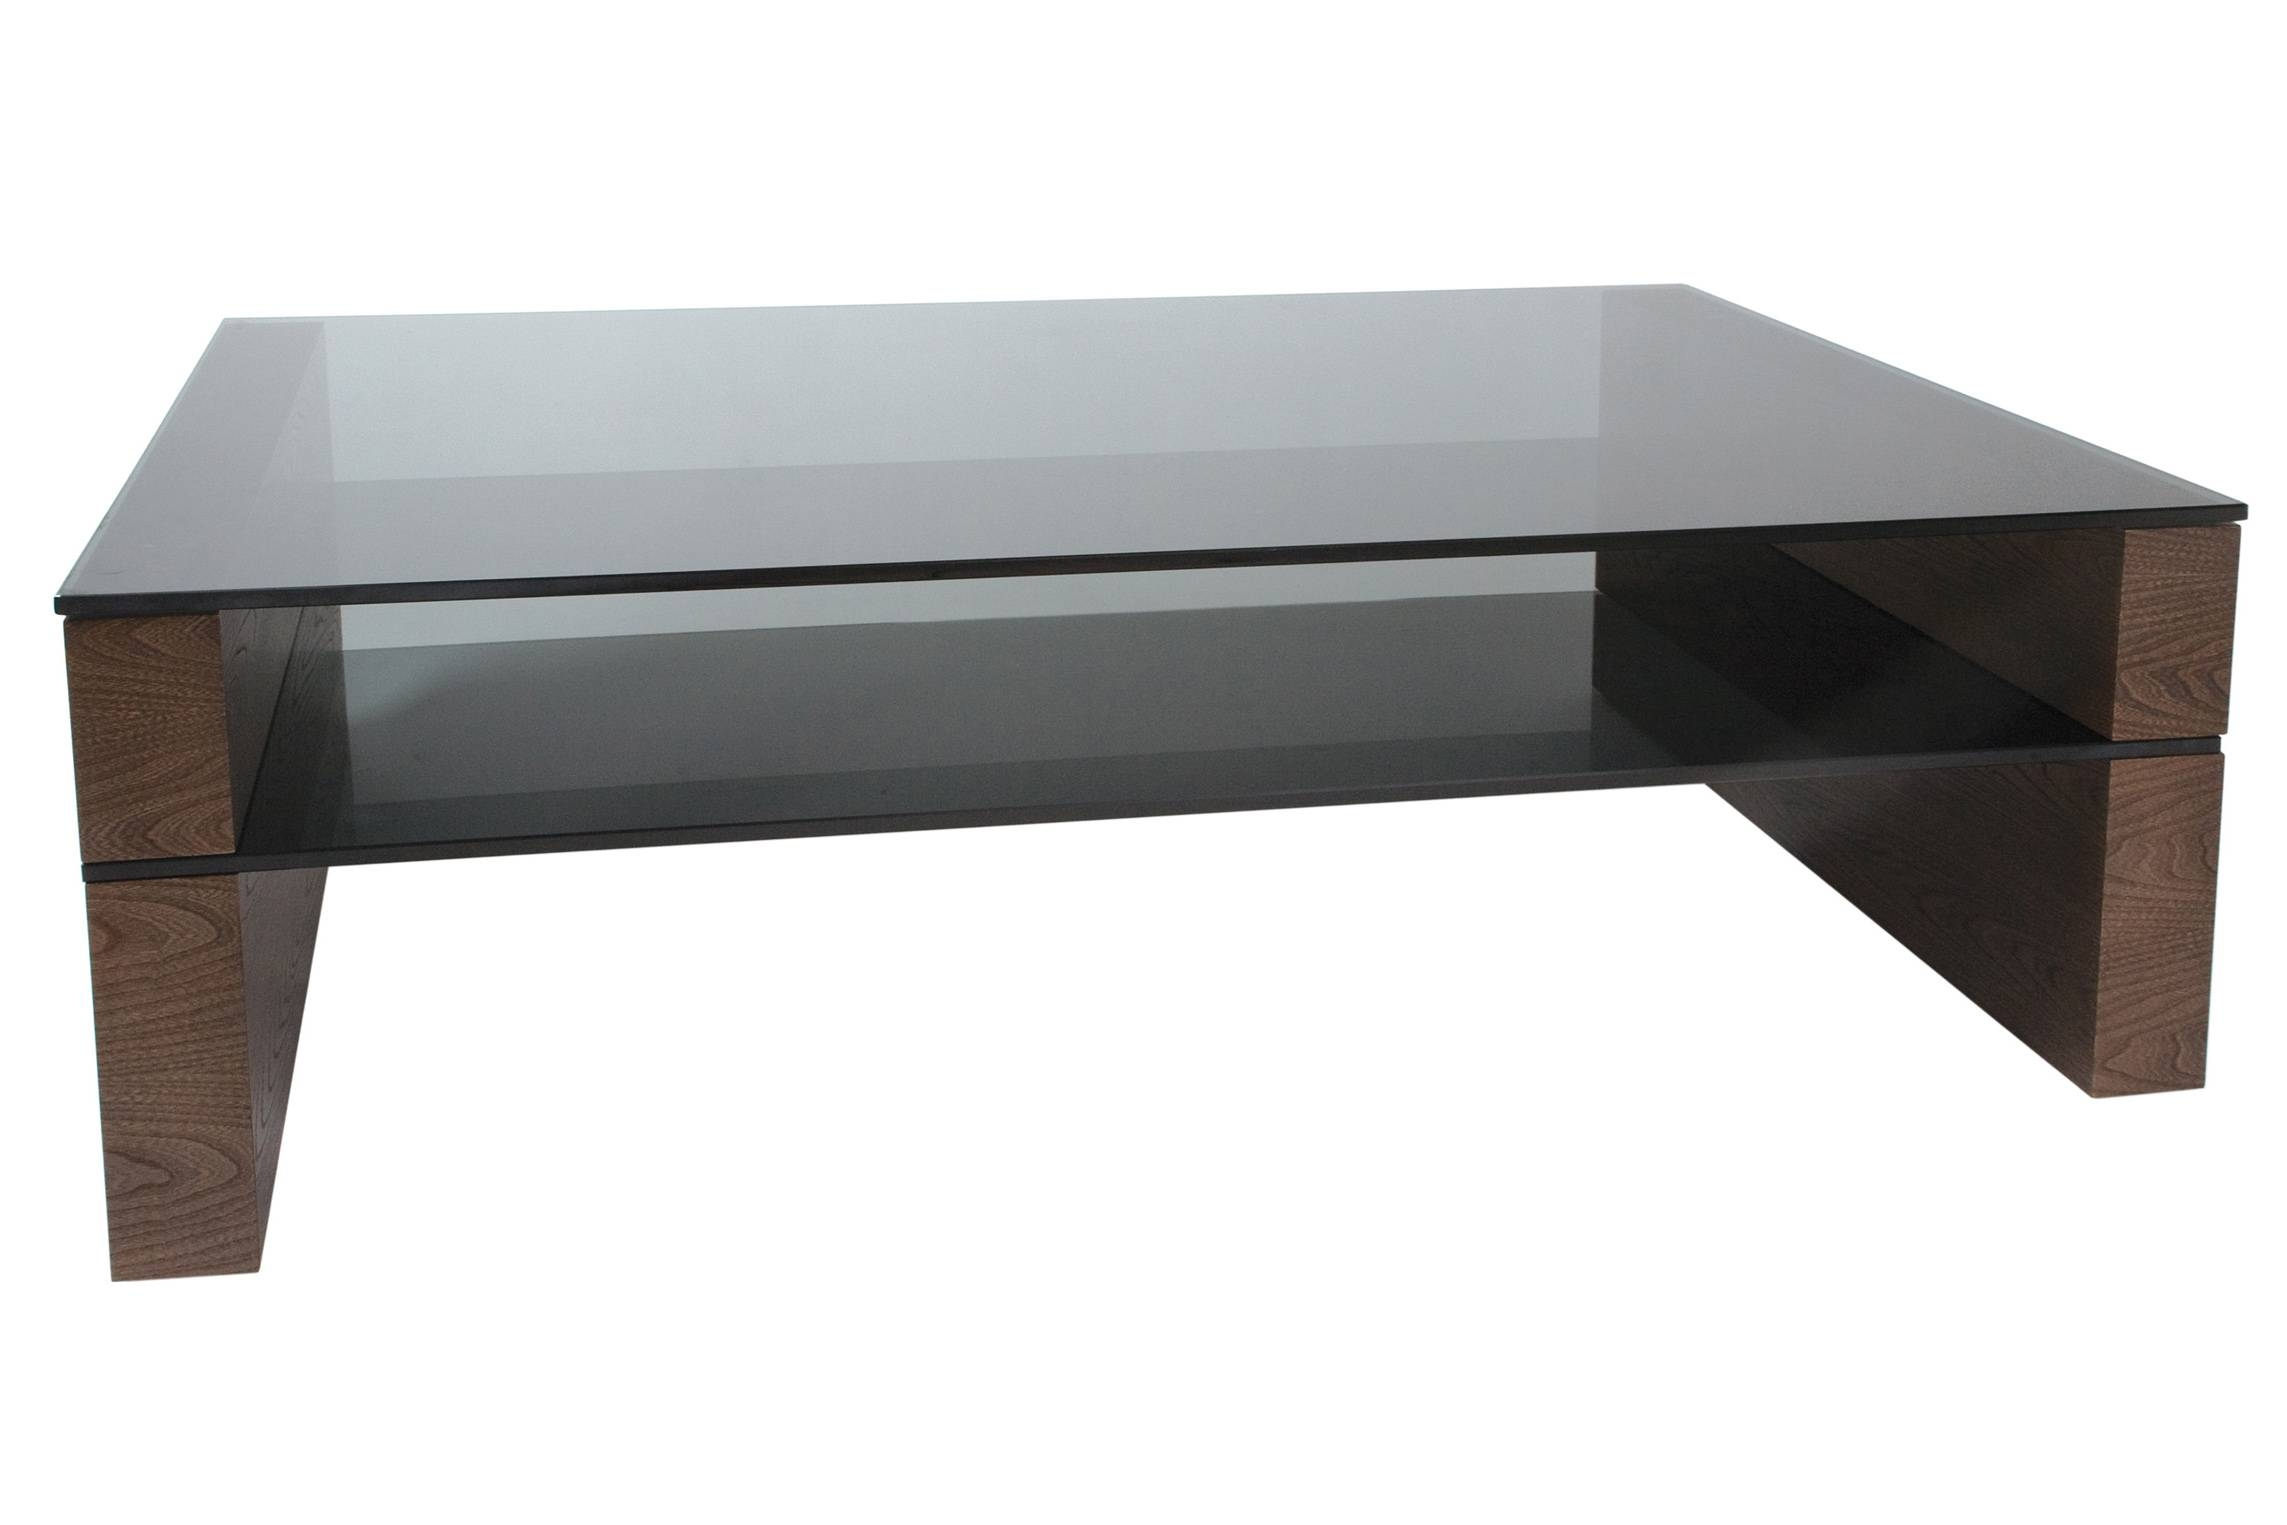 Square Wood And Glass Coffee Table | Coffee Tables Decoration for Square Dark Wood Coffee Tables (Image 27 of 30)